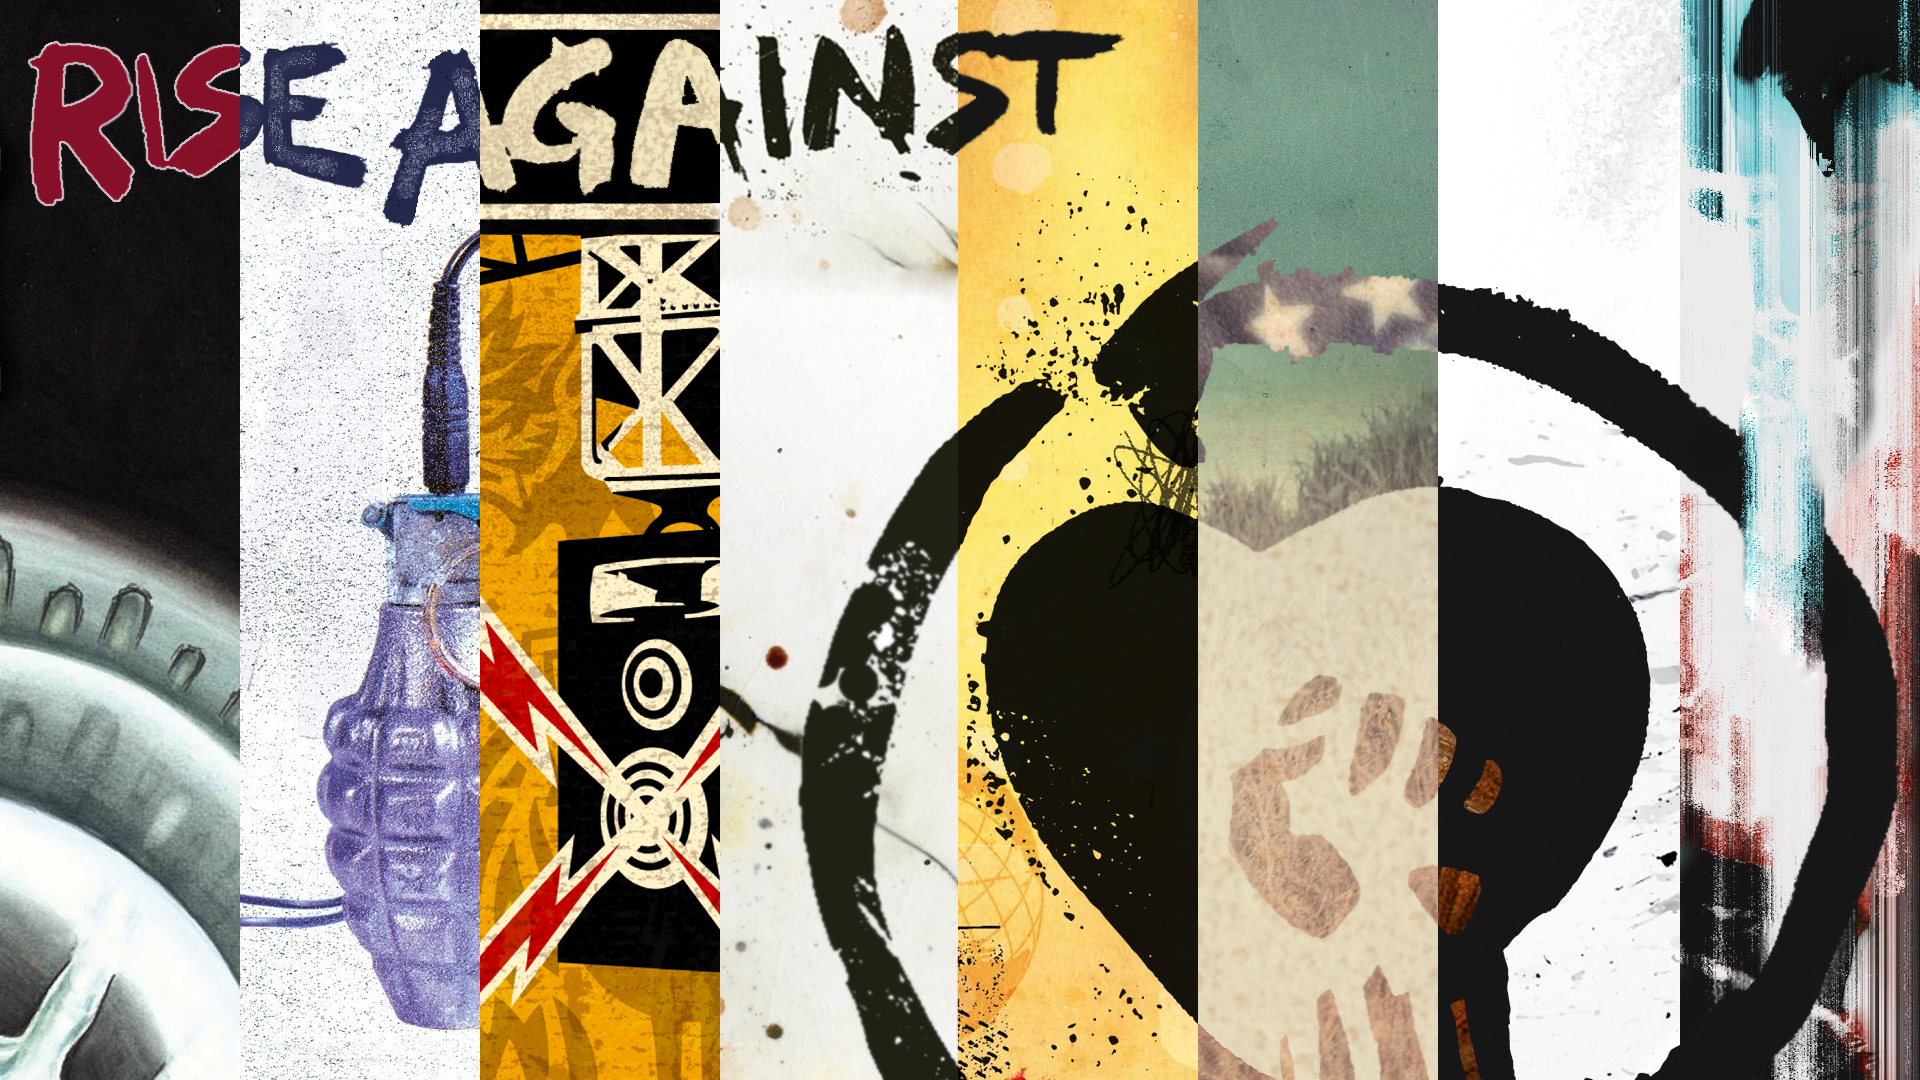 New and improved compilation wallpaper featuring Wolves riseagainst 1920x1080